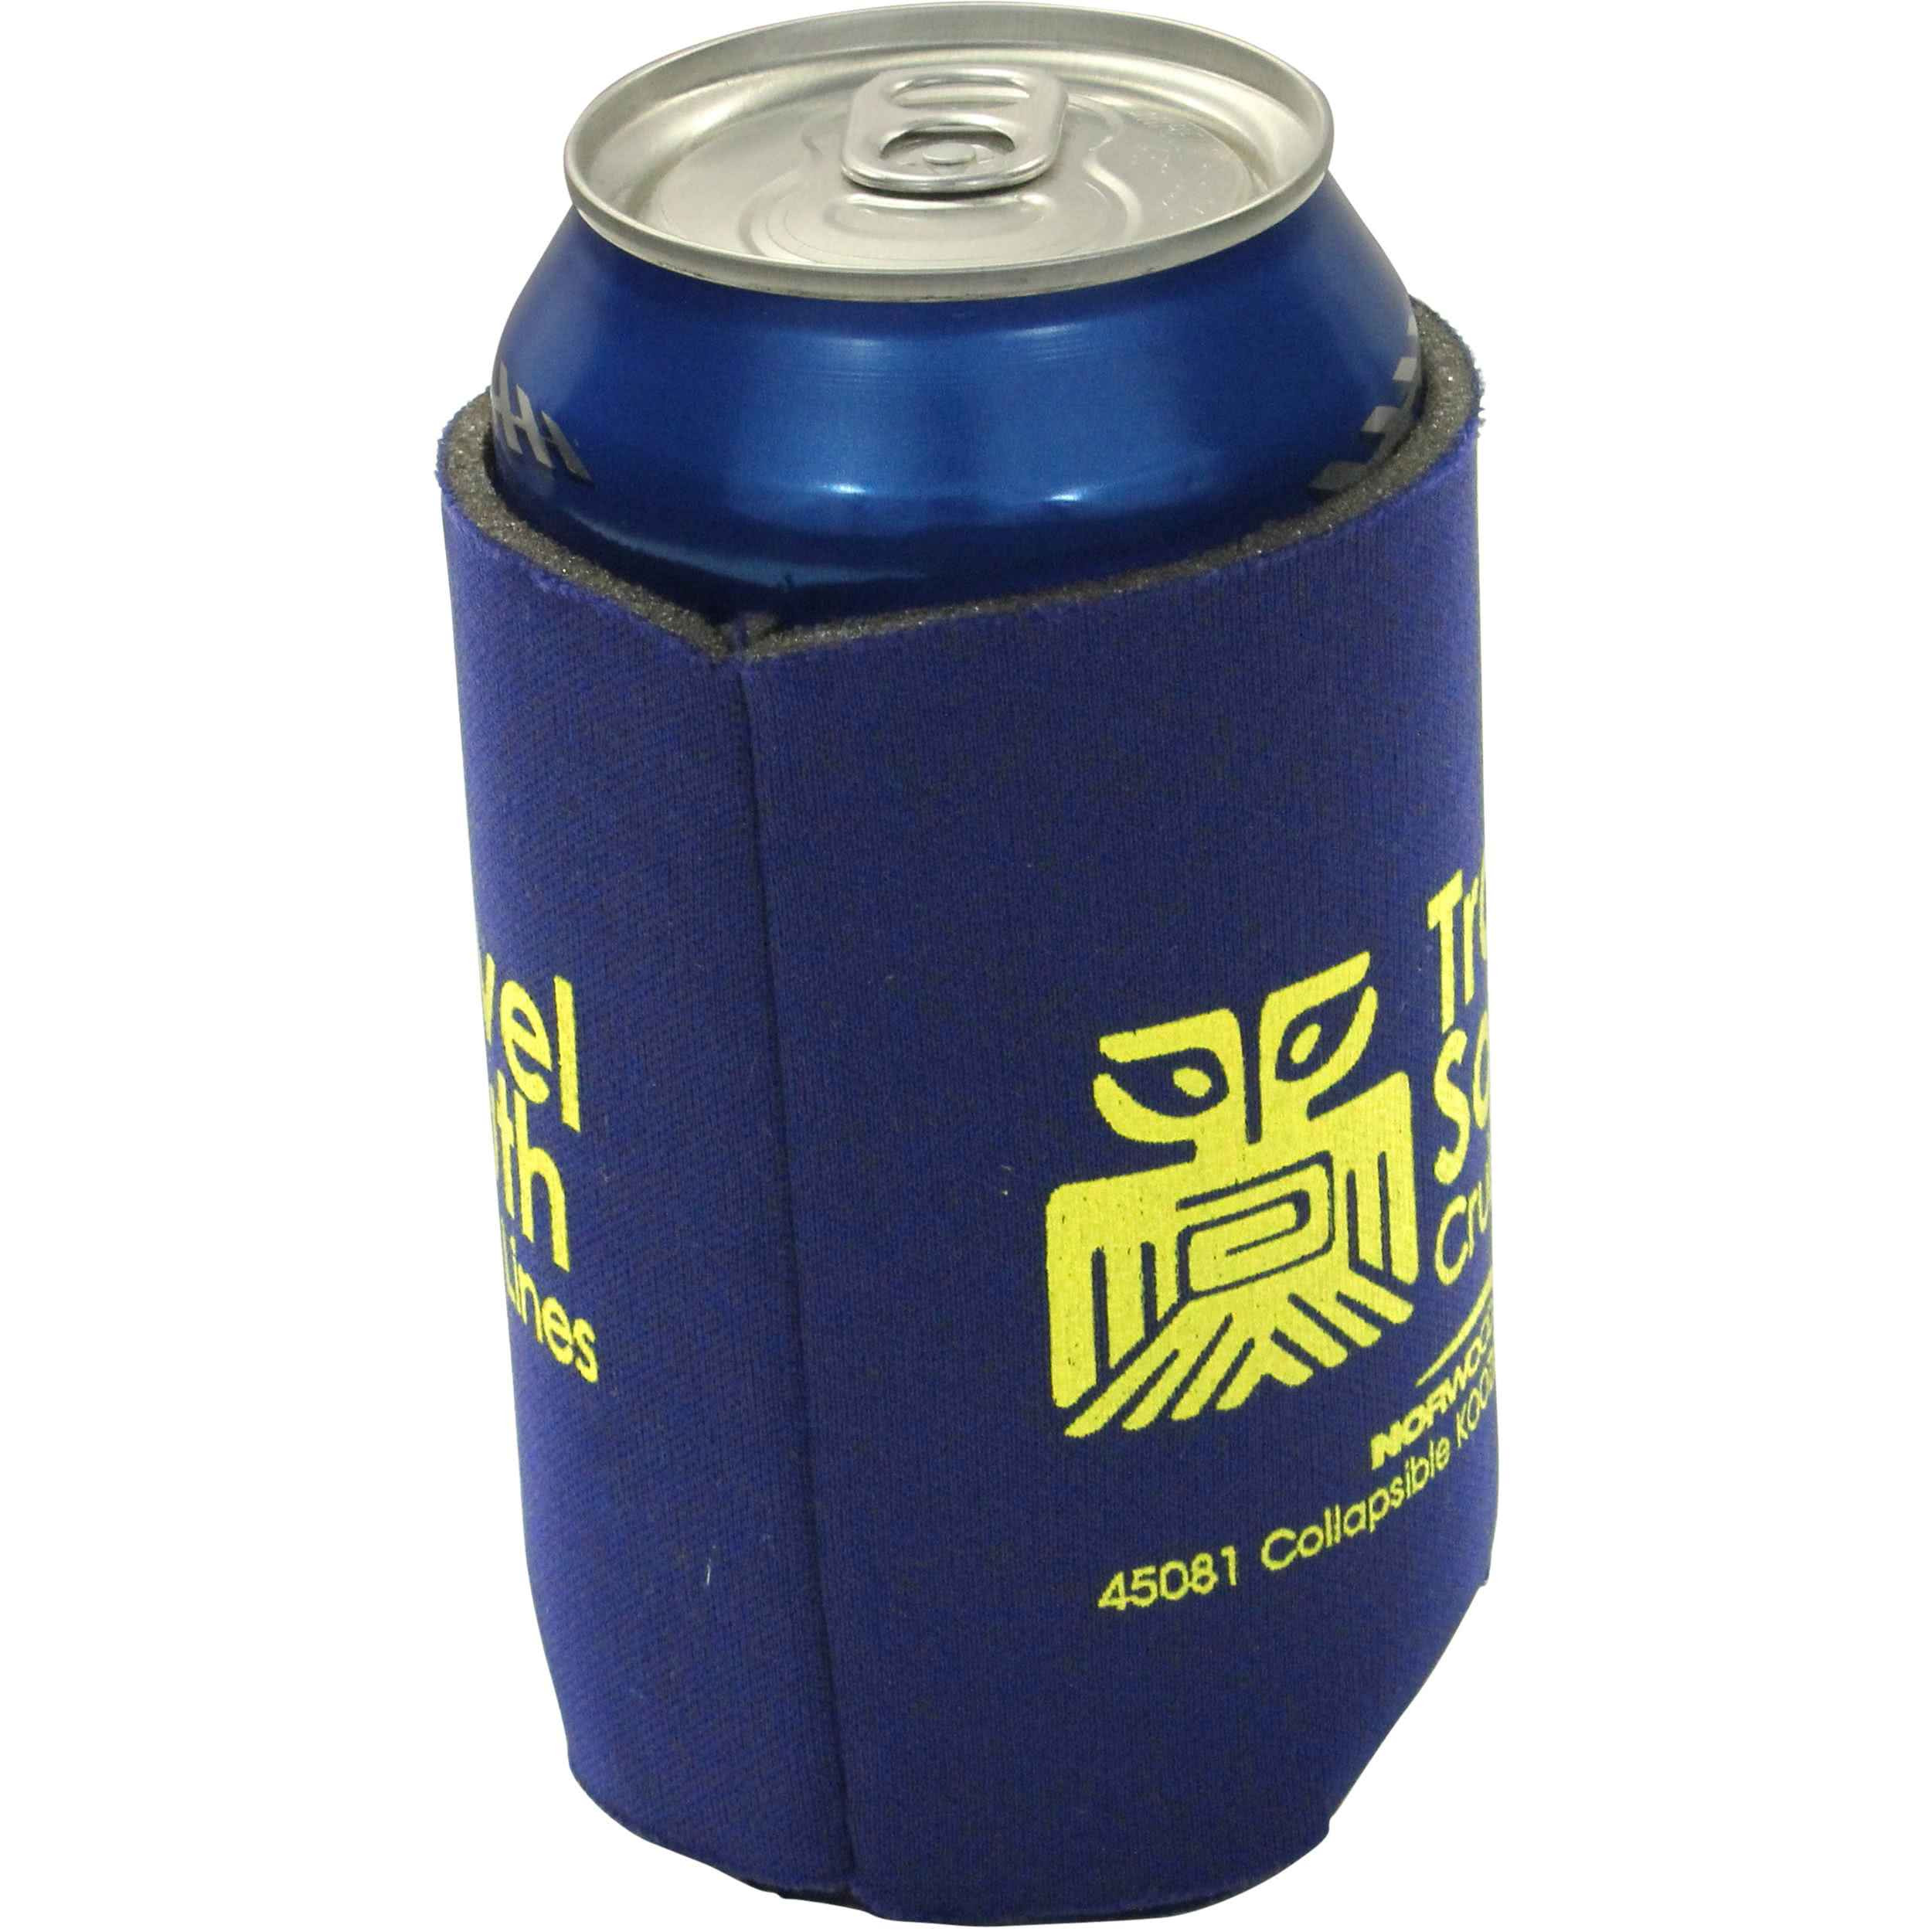 Unique Collapsible Koozie Can Cooler Personalized Koozies Can Cozy Of Wonderful 48 Pictures Can Cozy